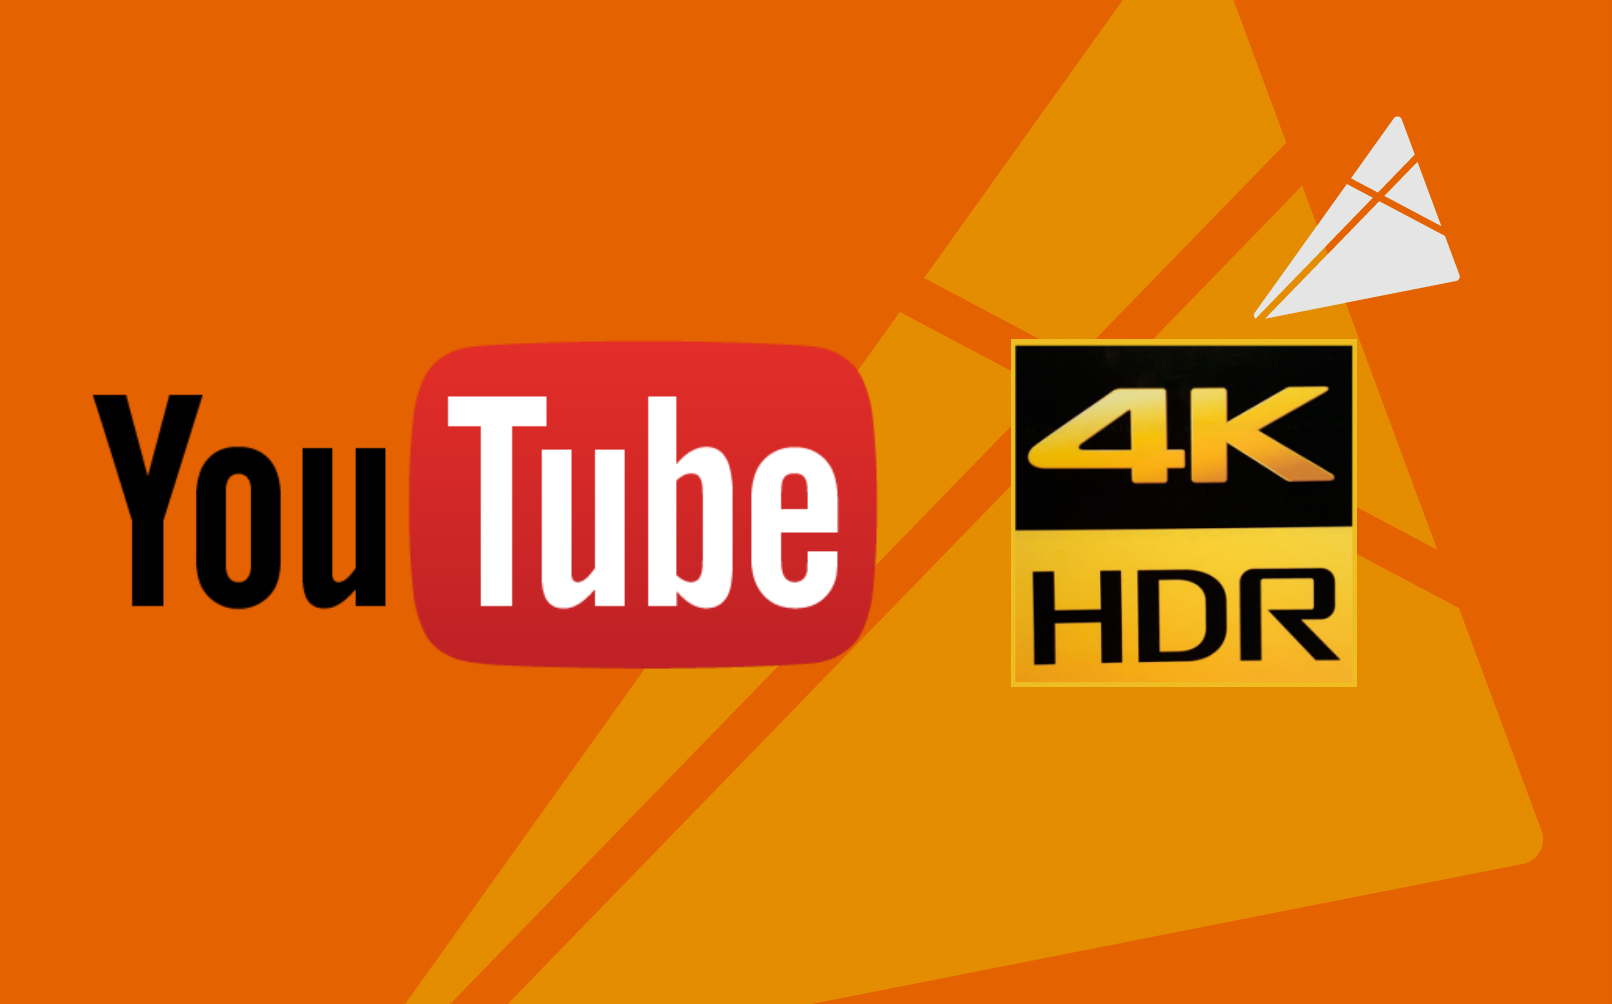 Youtube ya es compatible con videos HDR - Youtuber Today